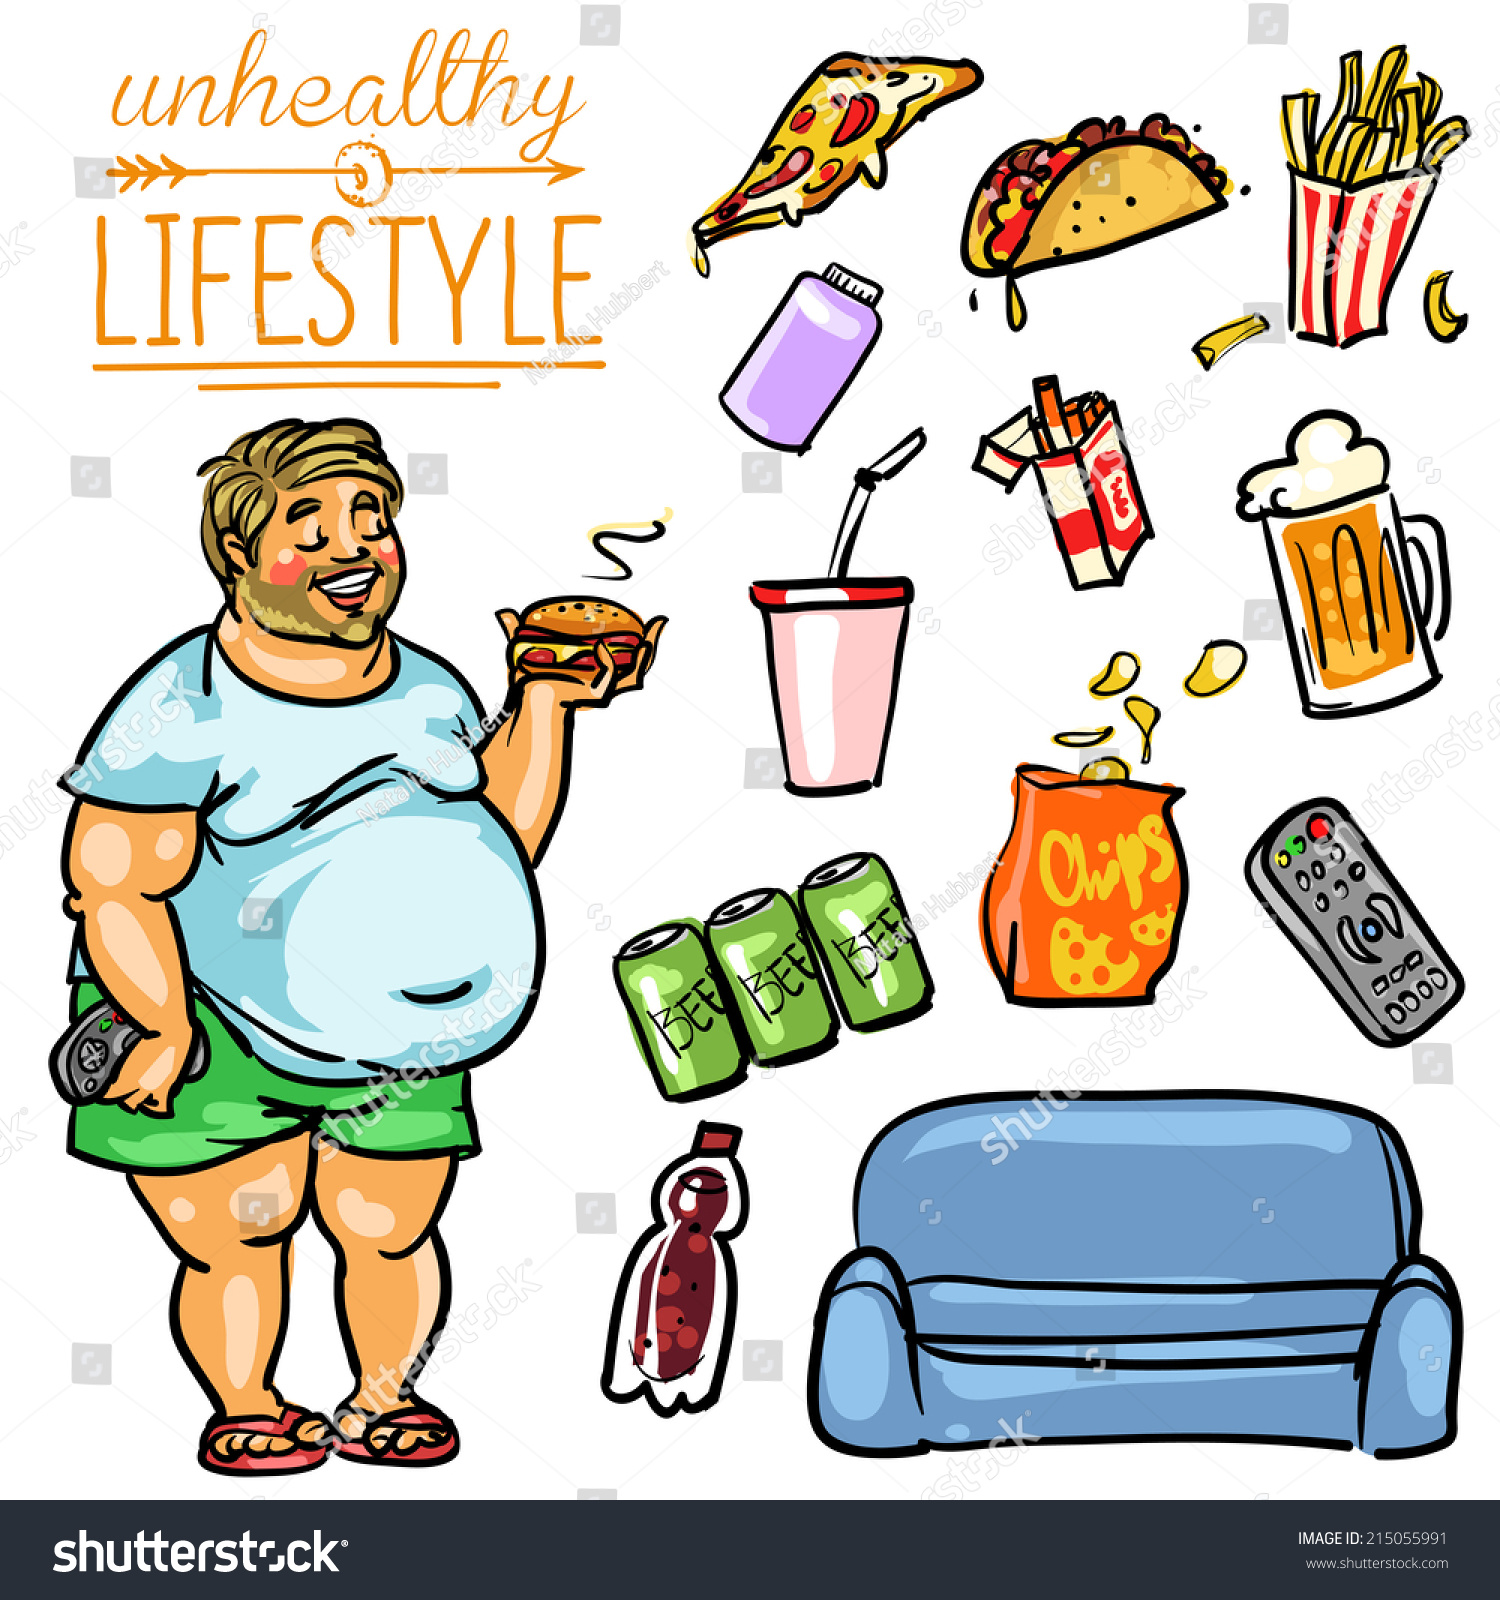 Unhealthy Lifestyle Hand Drawn Cartoon Collection Stock Vector 215055991 Shutterstock